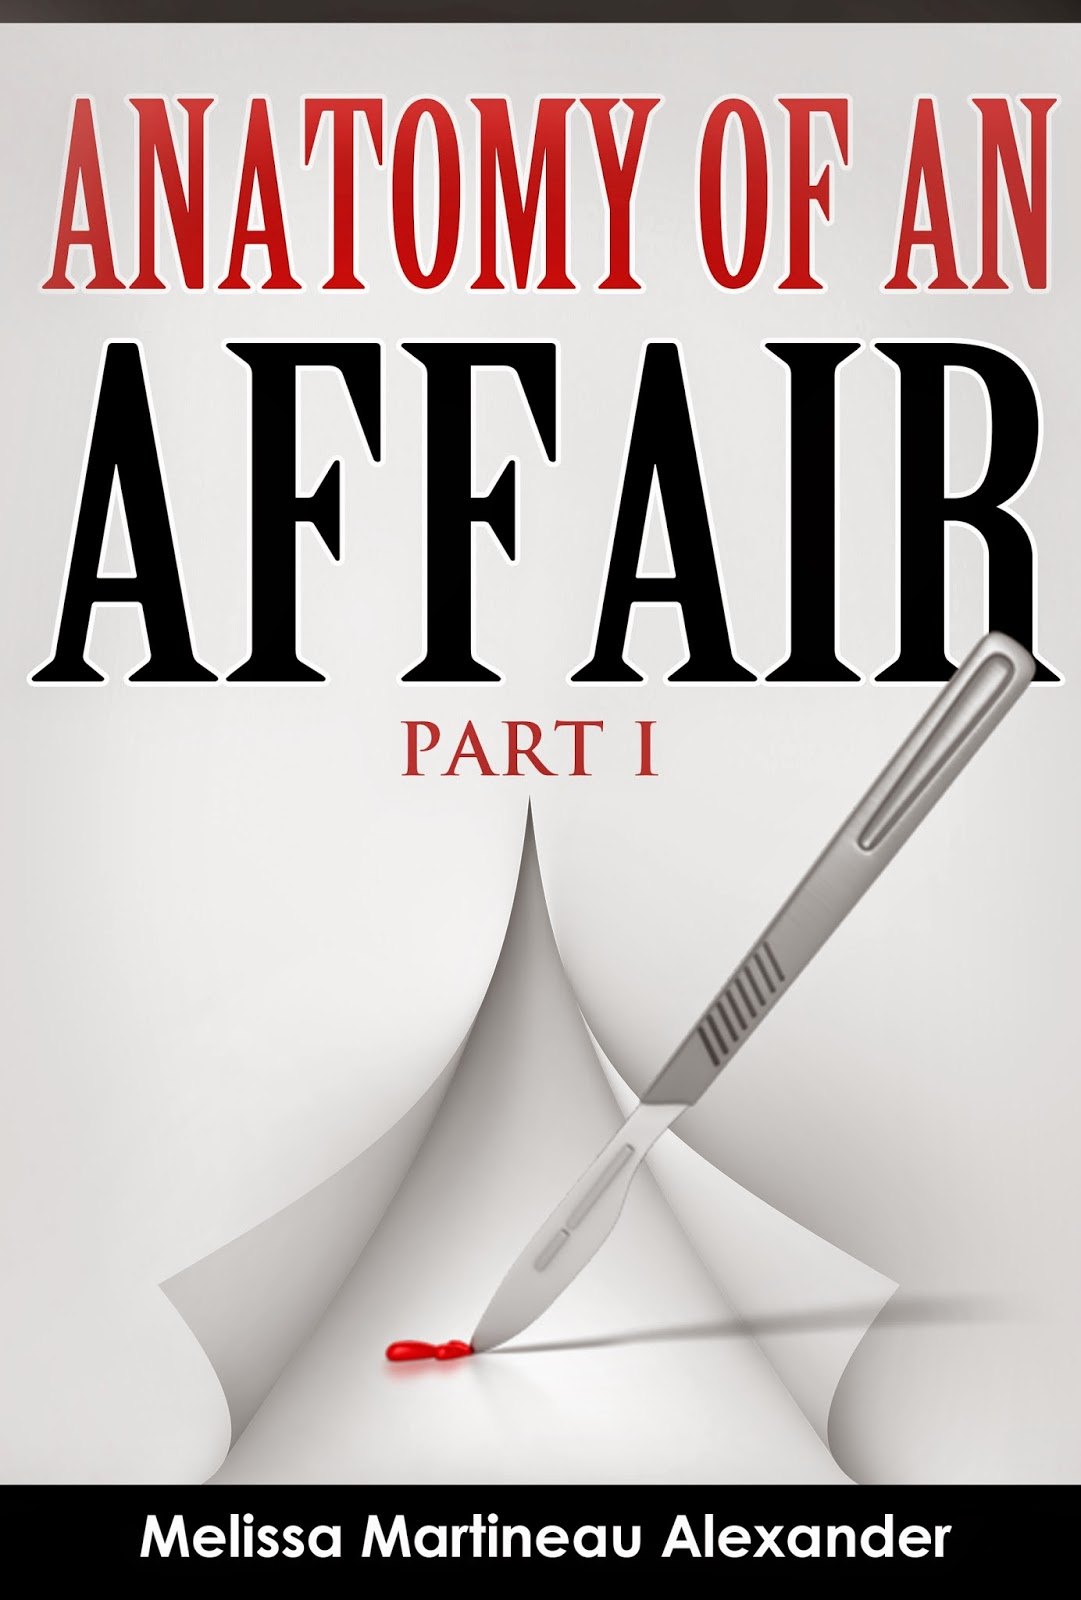 anatomy of an affair, part 1, melissa martineau alexander, romance, adultery